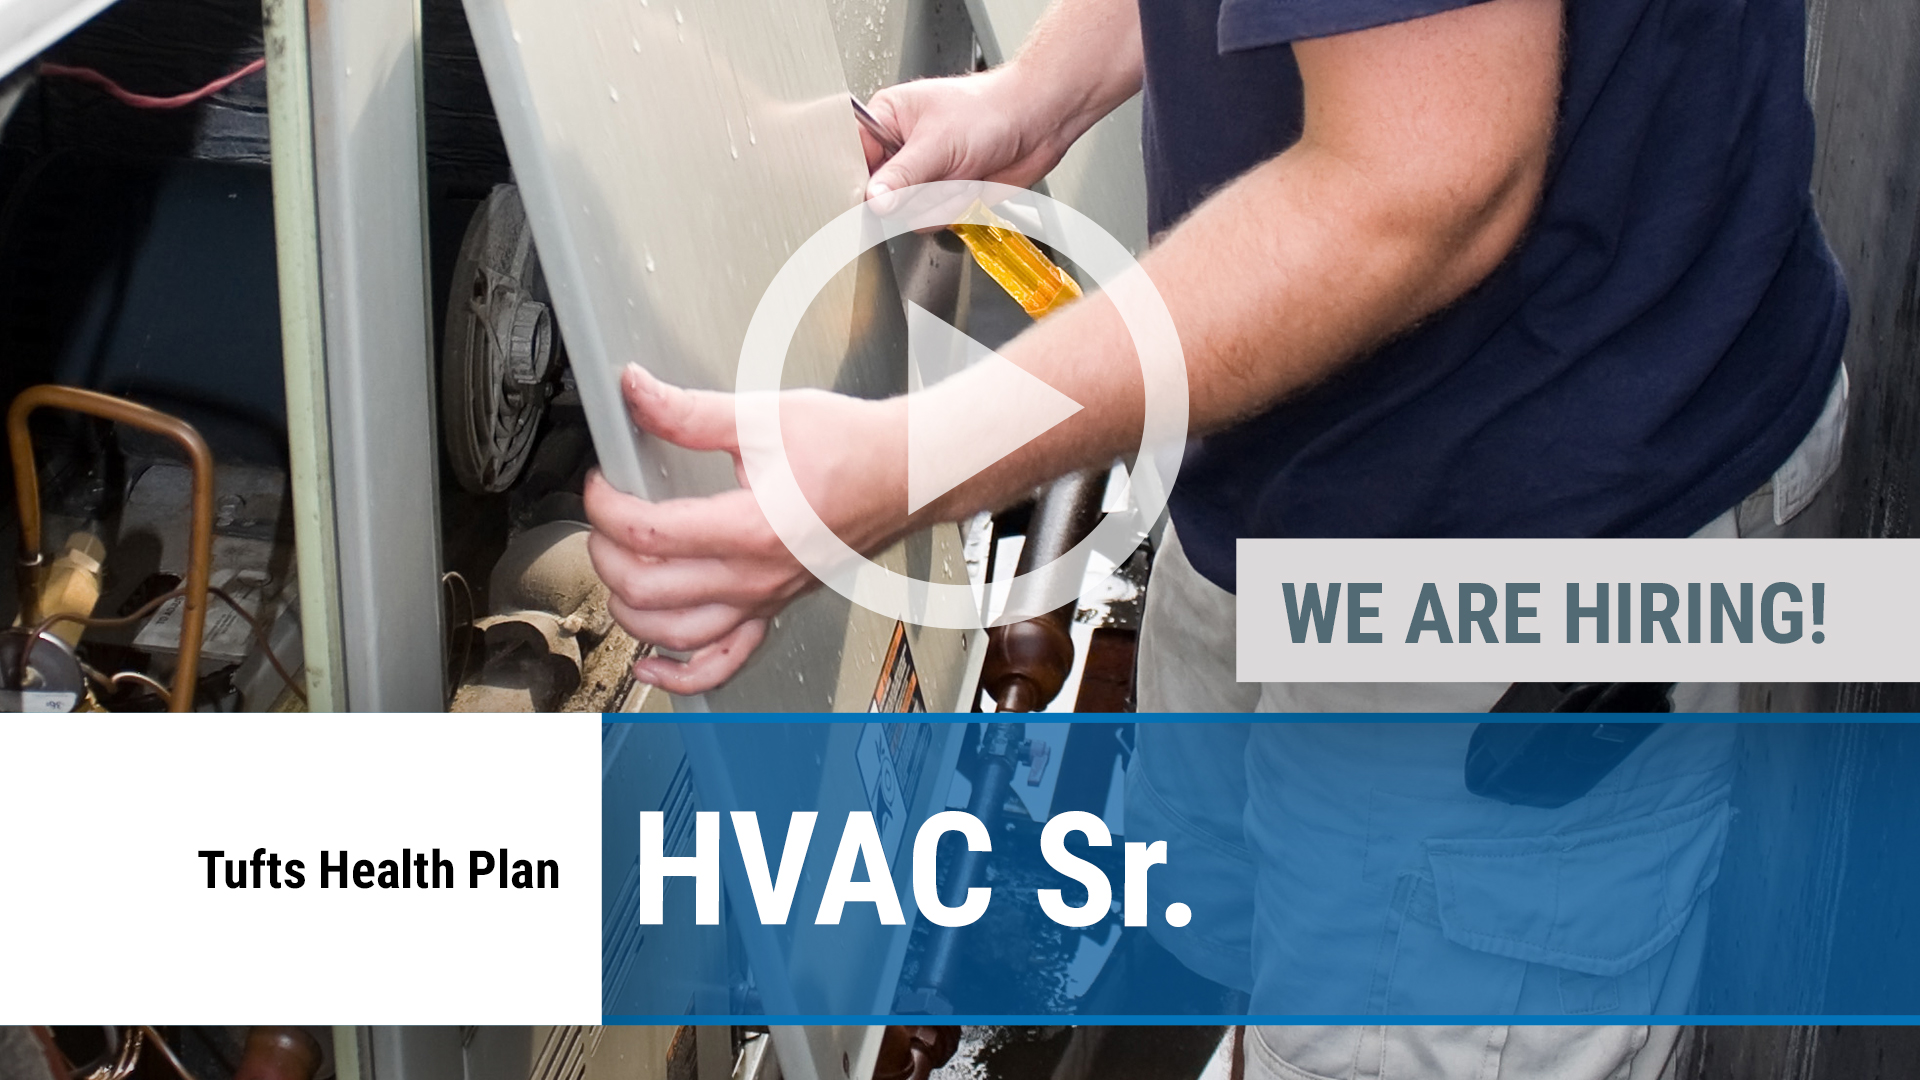 Watch our careers video for available job opening HVAC Sr. in Watertown, MA